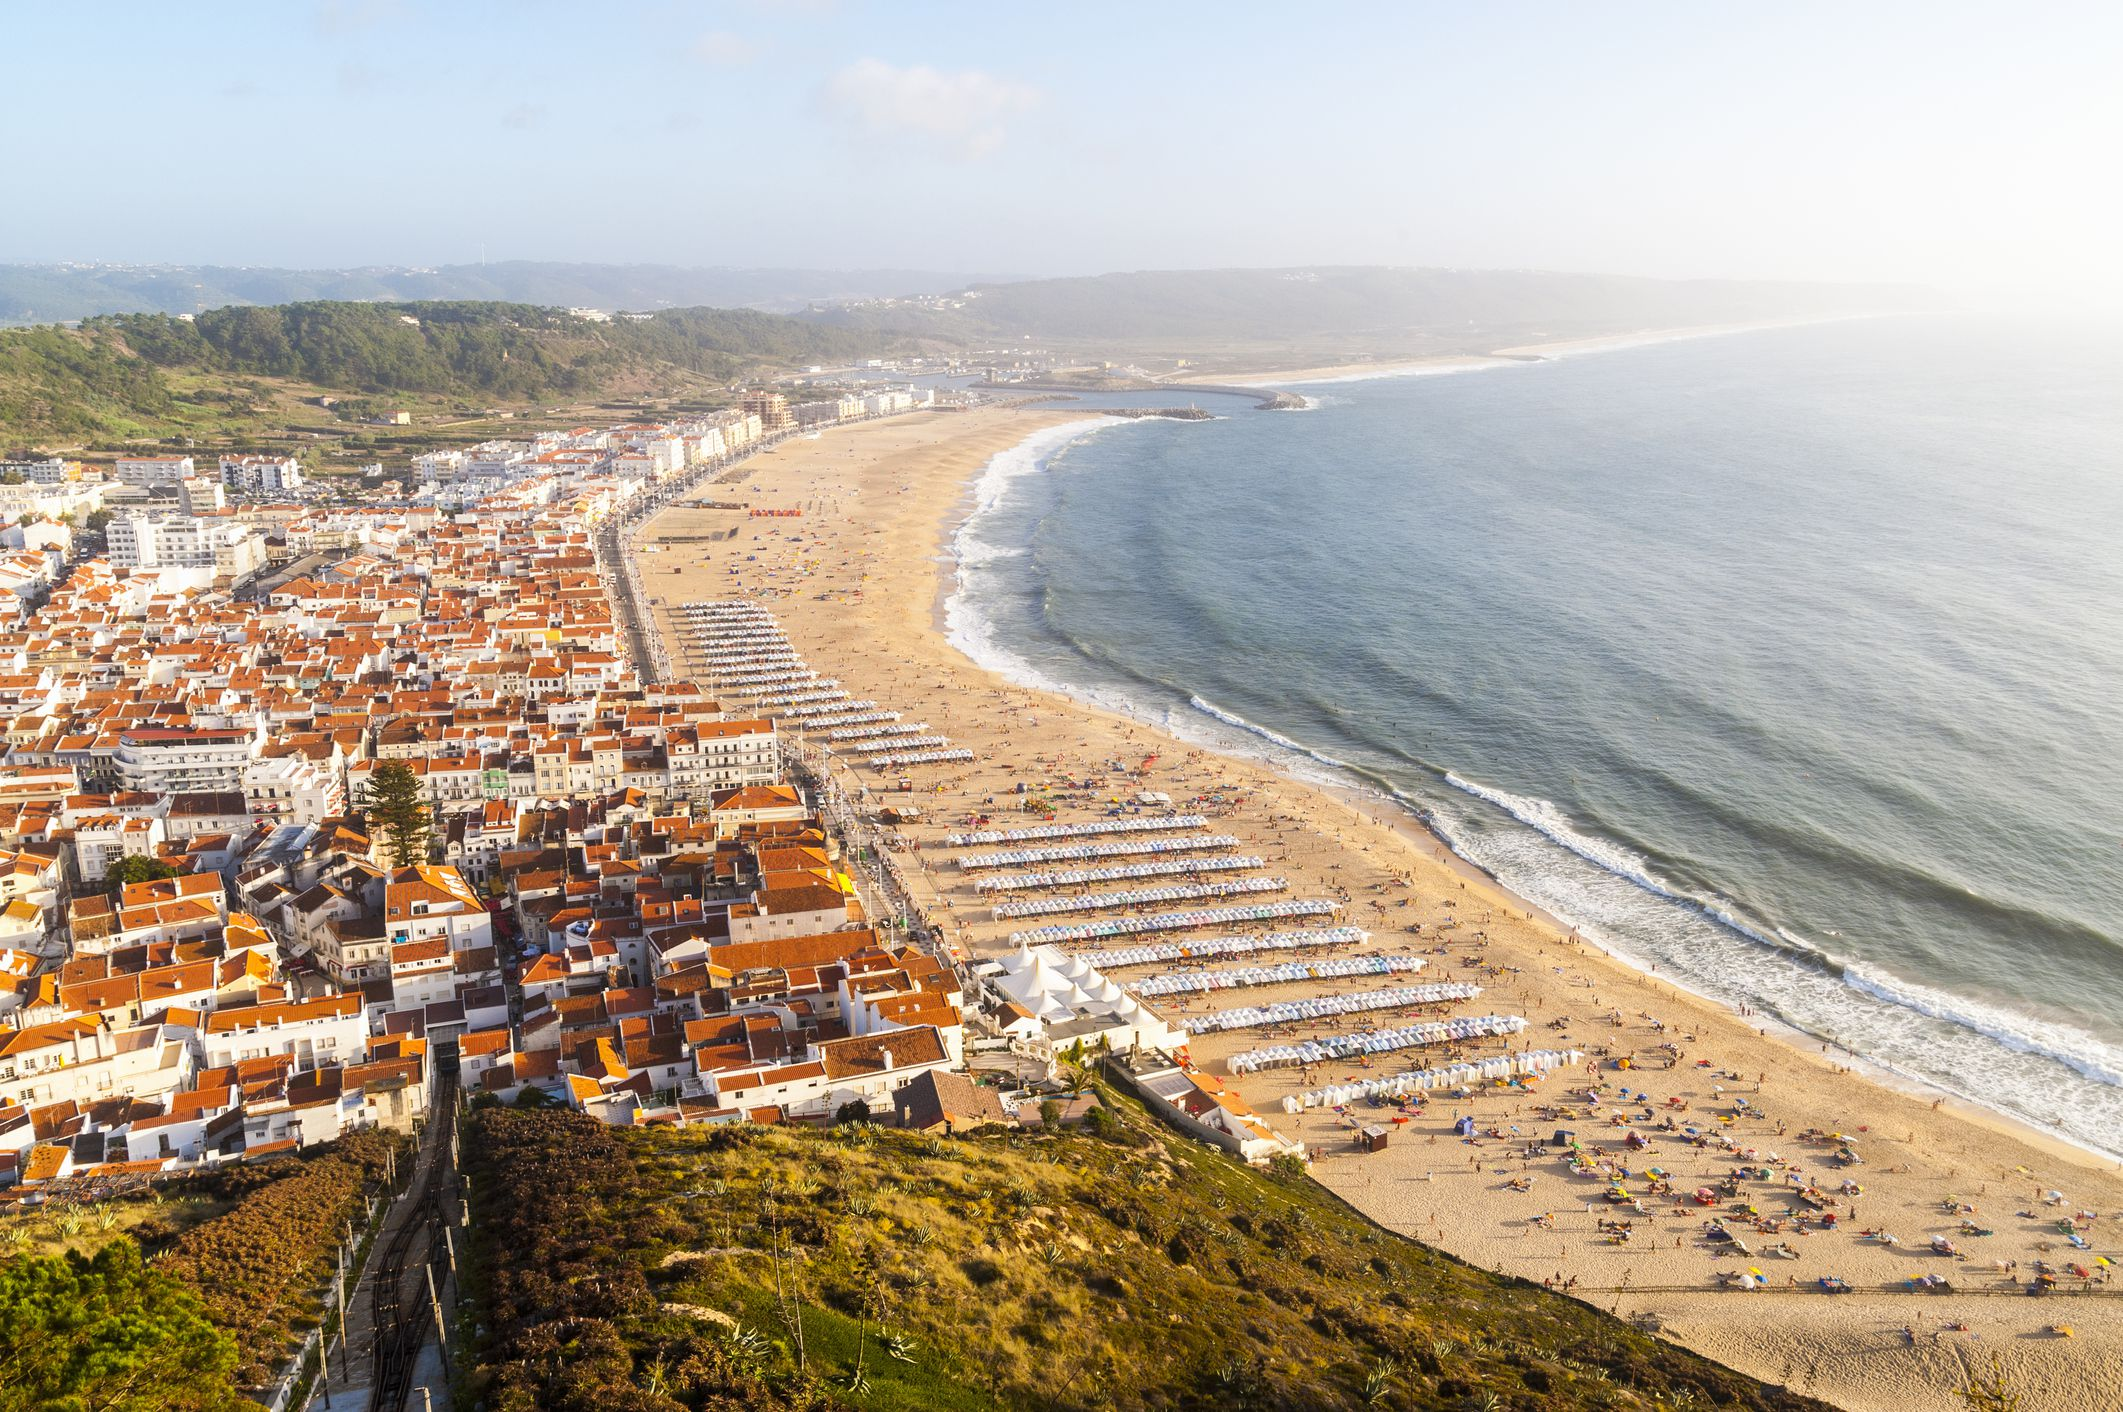 The Top Things to Do in Nazaré, Portugal